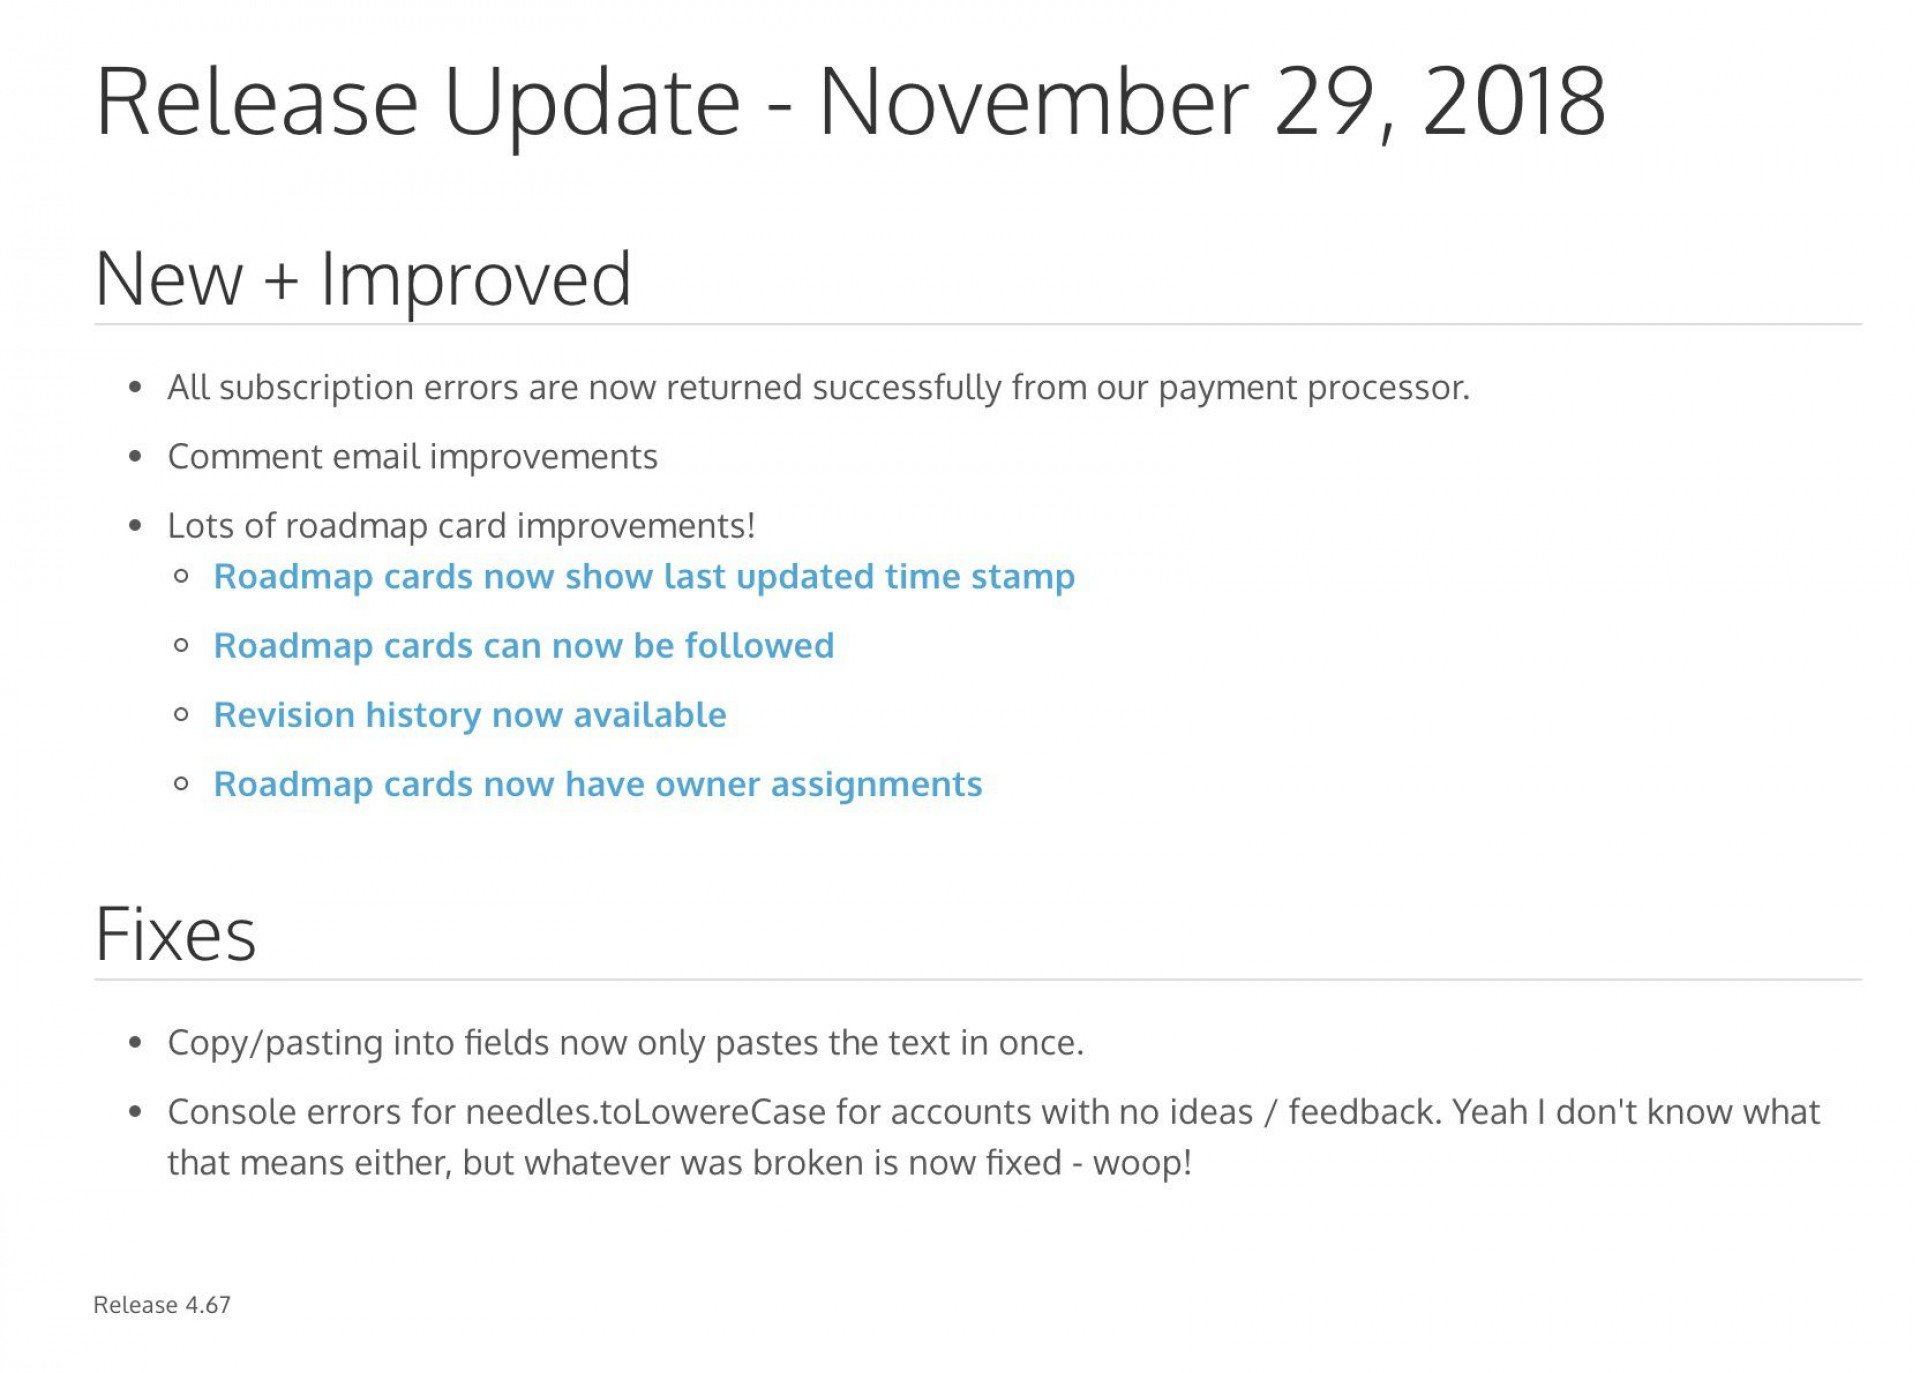 008 Excellent Software Release Note Template Concept  Free Download Sample Microsoft Word1920